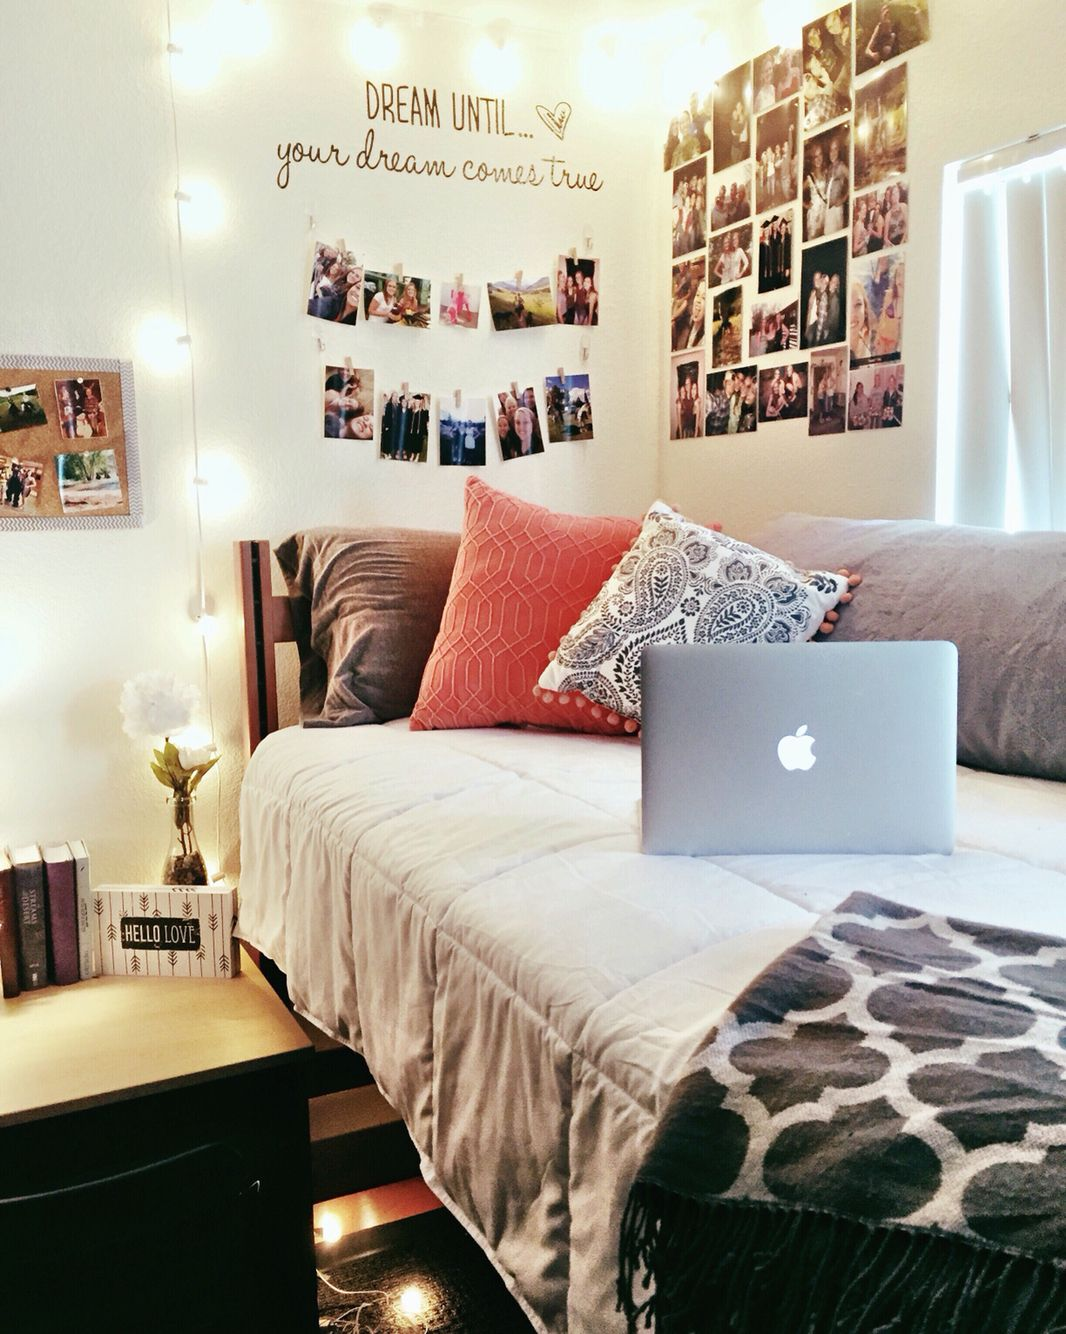 best 25+ dorm picture collages ideas on pinterest | dorm room